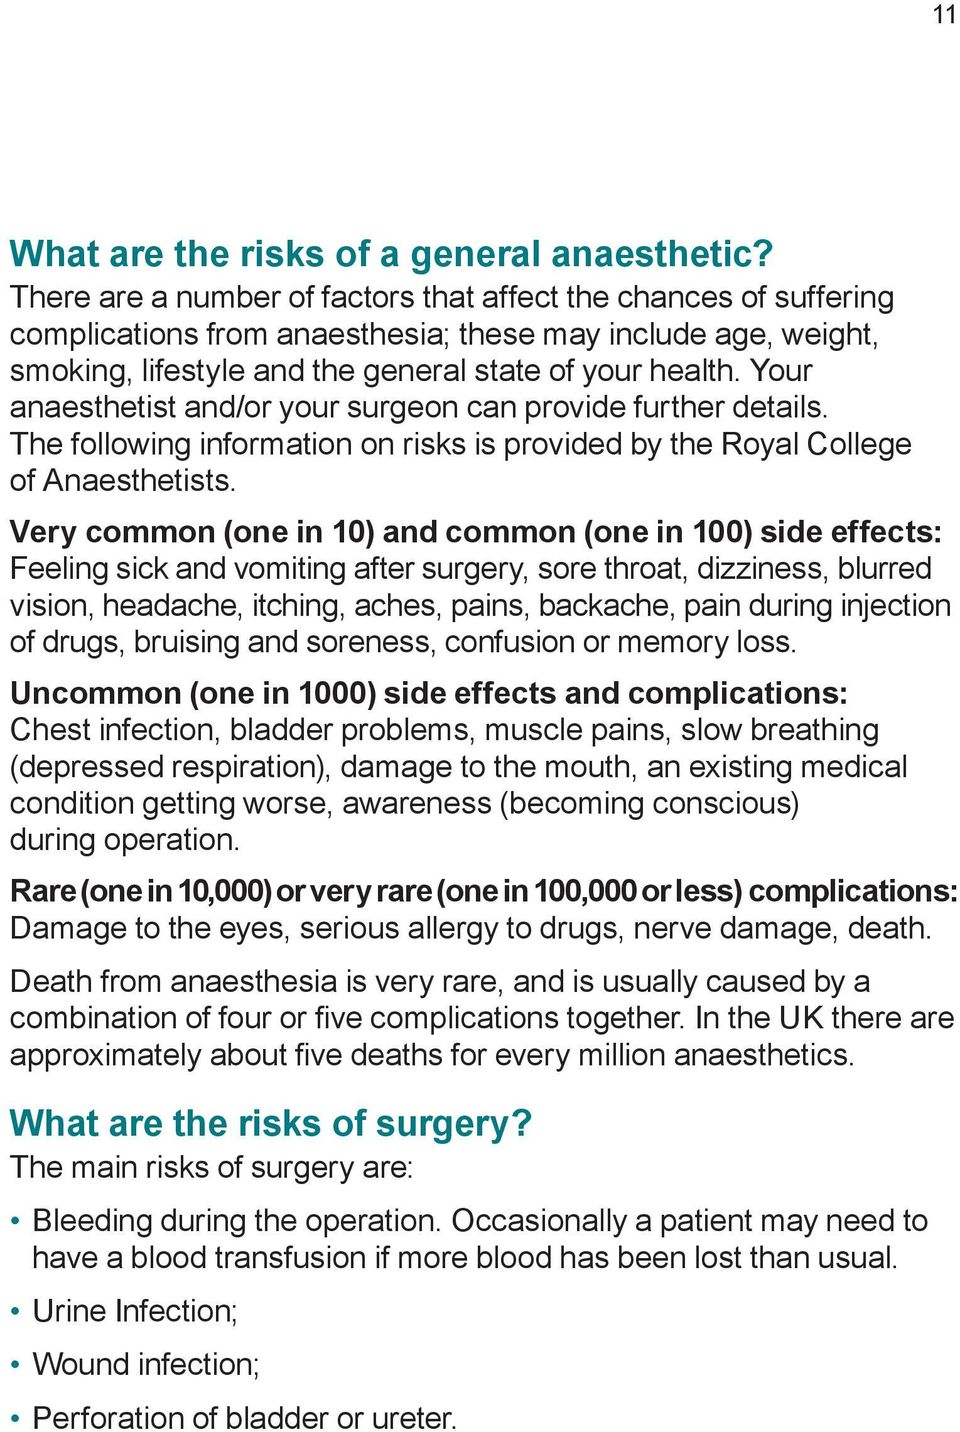 Your anaesthetist and/or your surgeon can provide further details. The following information on risks is provided by the Royal College of Anaesthetists.